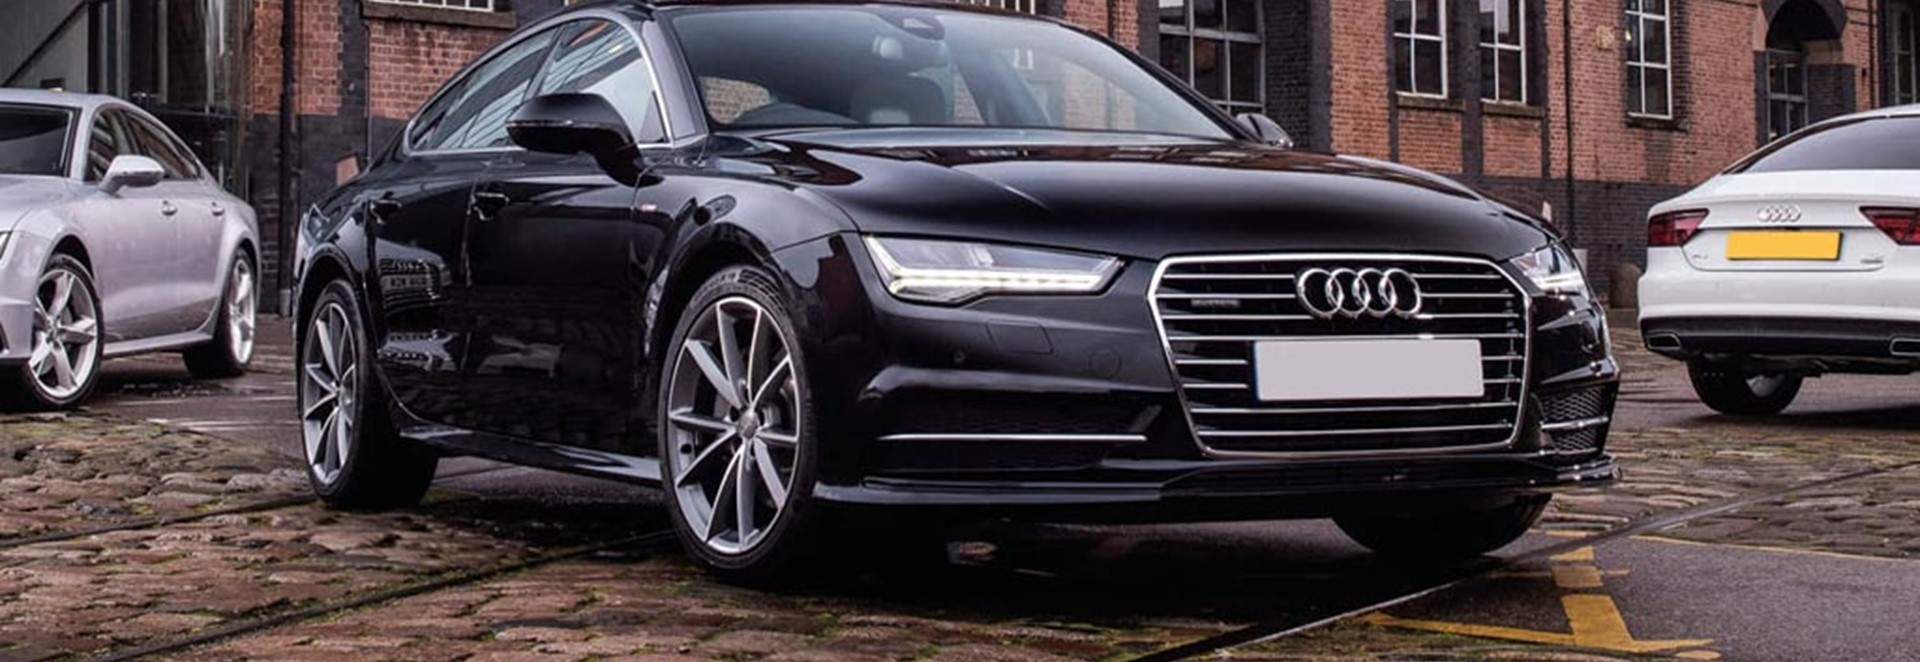 Audi A7 Prices